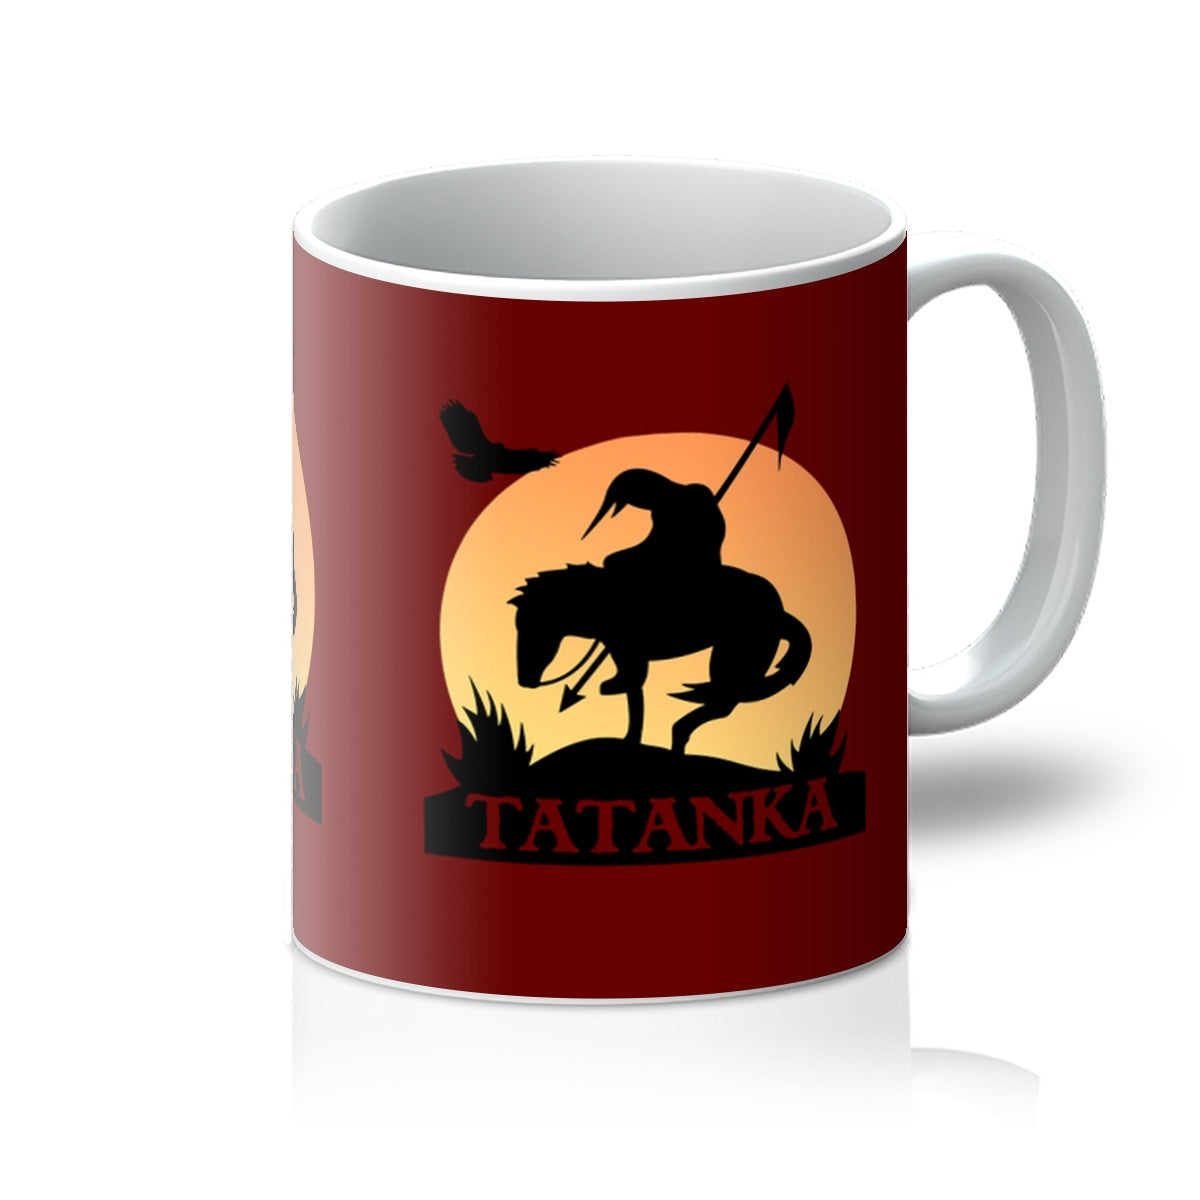 Tatanka End Of The Trail Mug